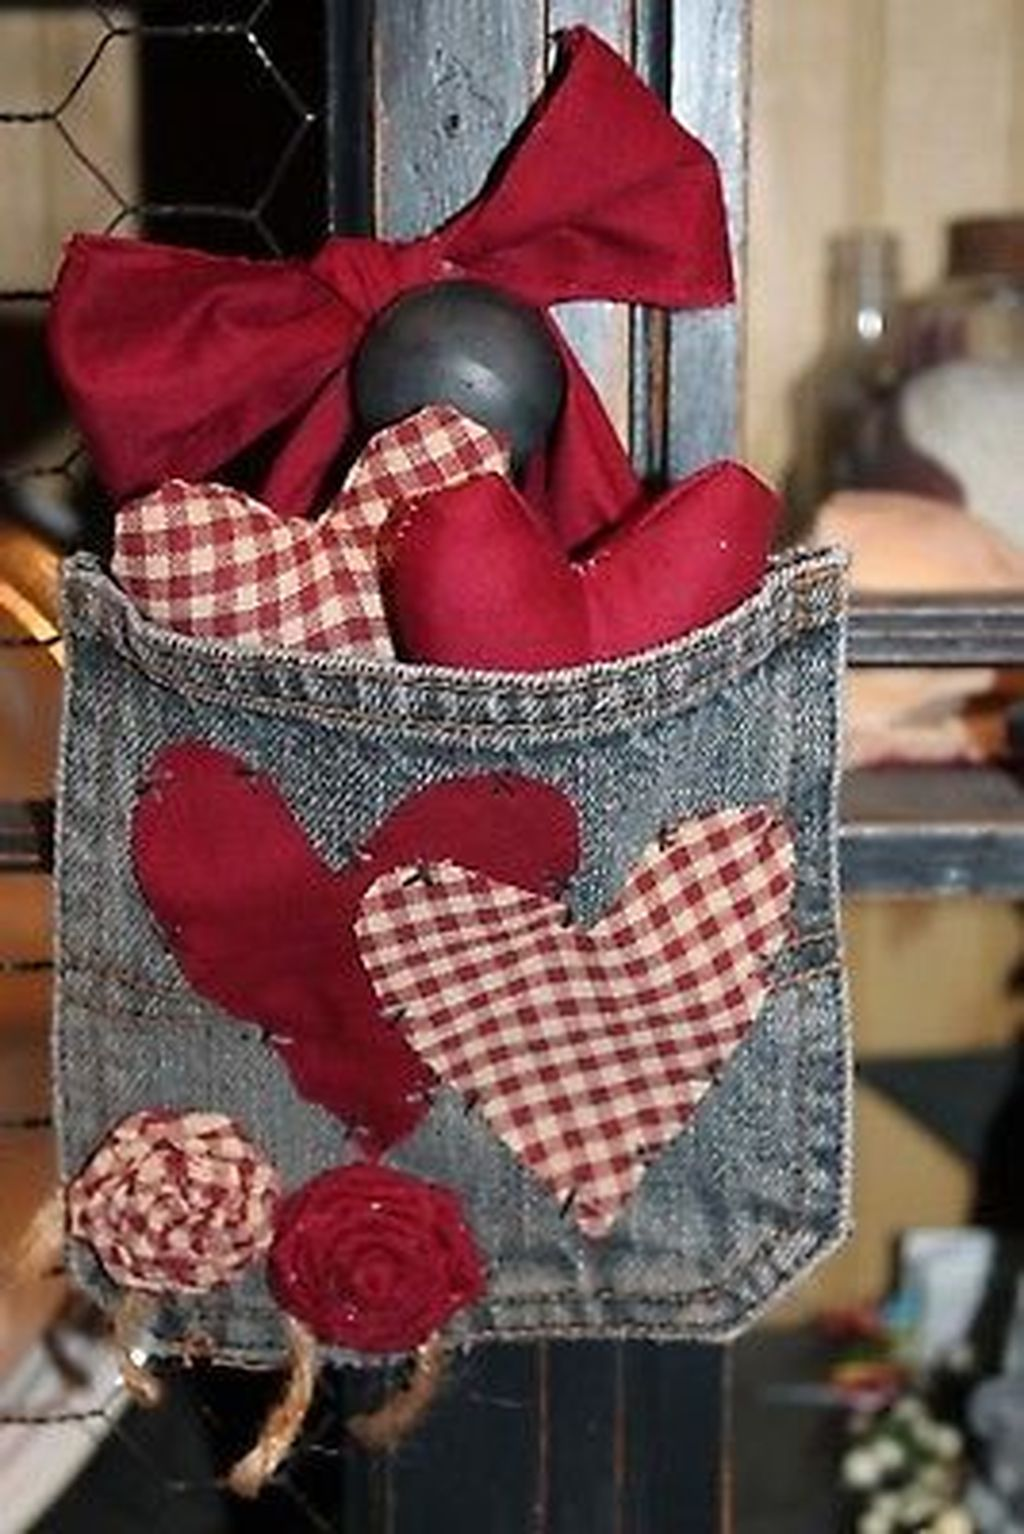 Inspiring Valentine Crafts Ideas For Your Home Decor 12